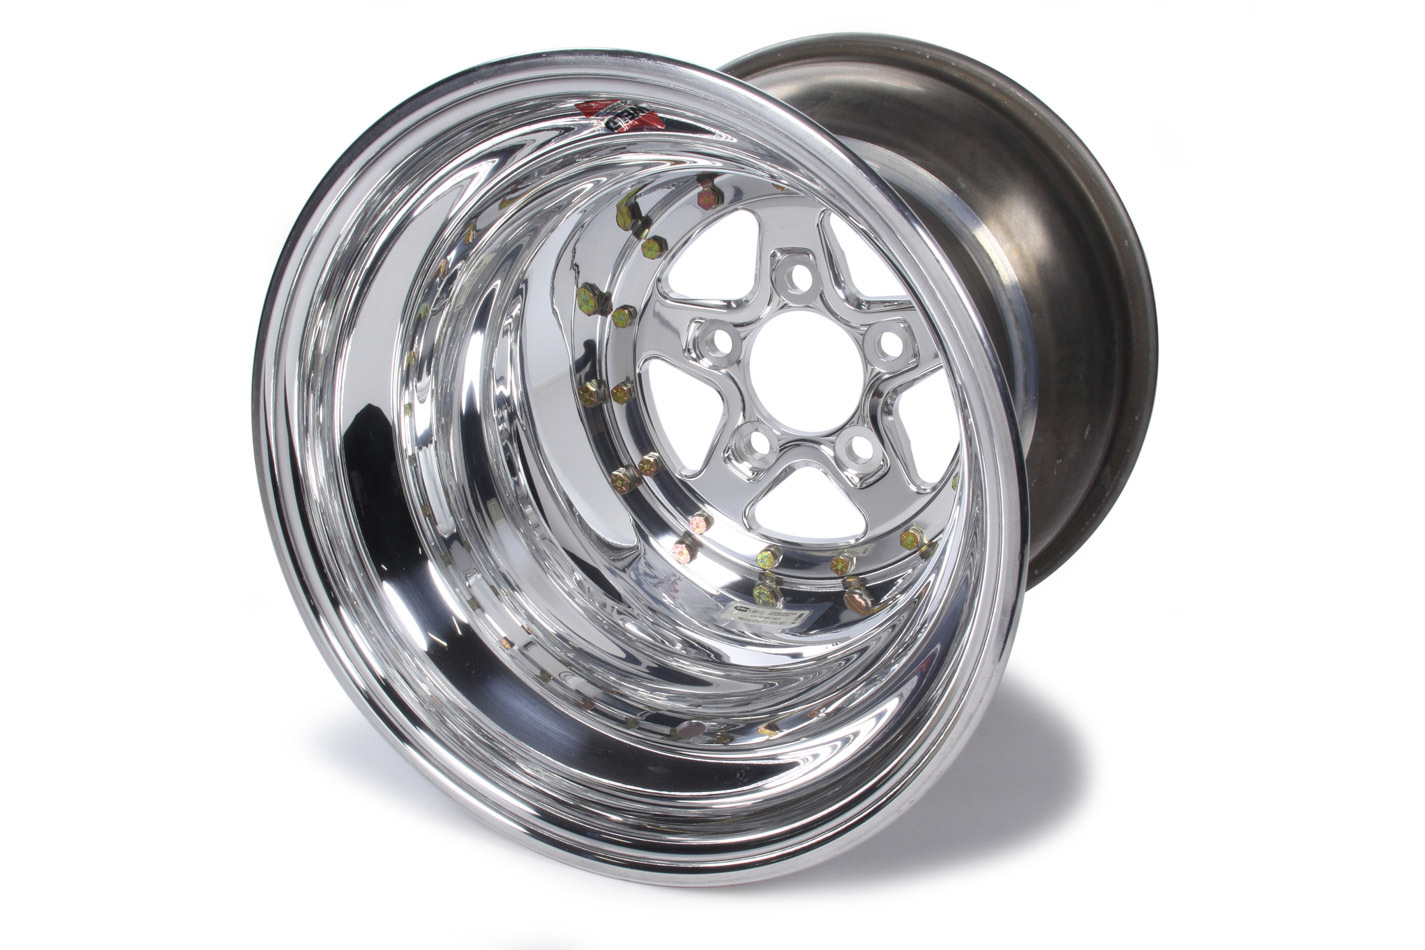 WELD RACING 15 X 14in Aluma Star 5 X 4.75in 3-3/8in BS P/N - 88-514276